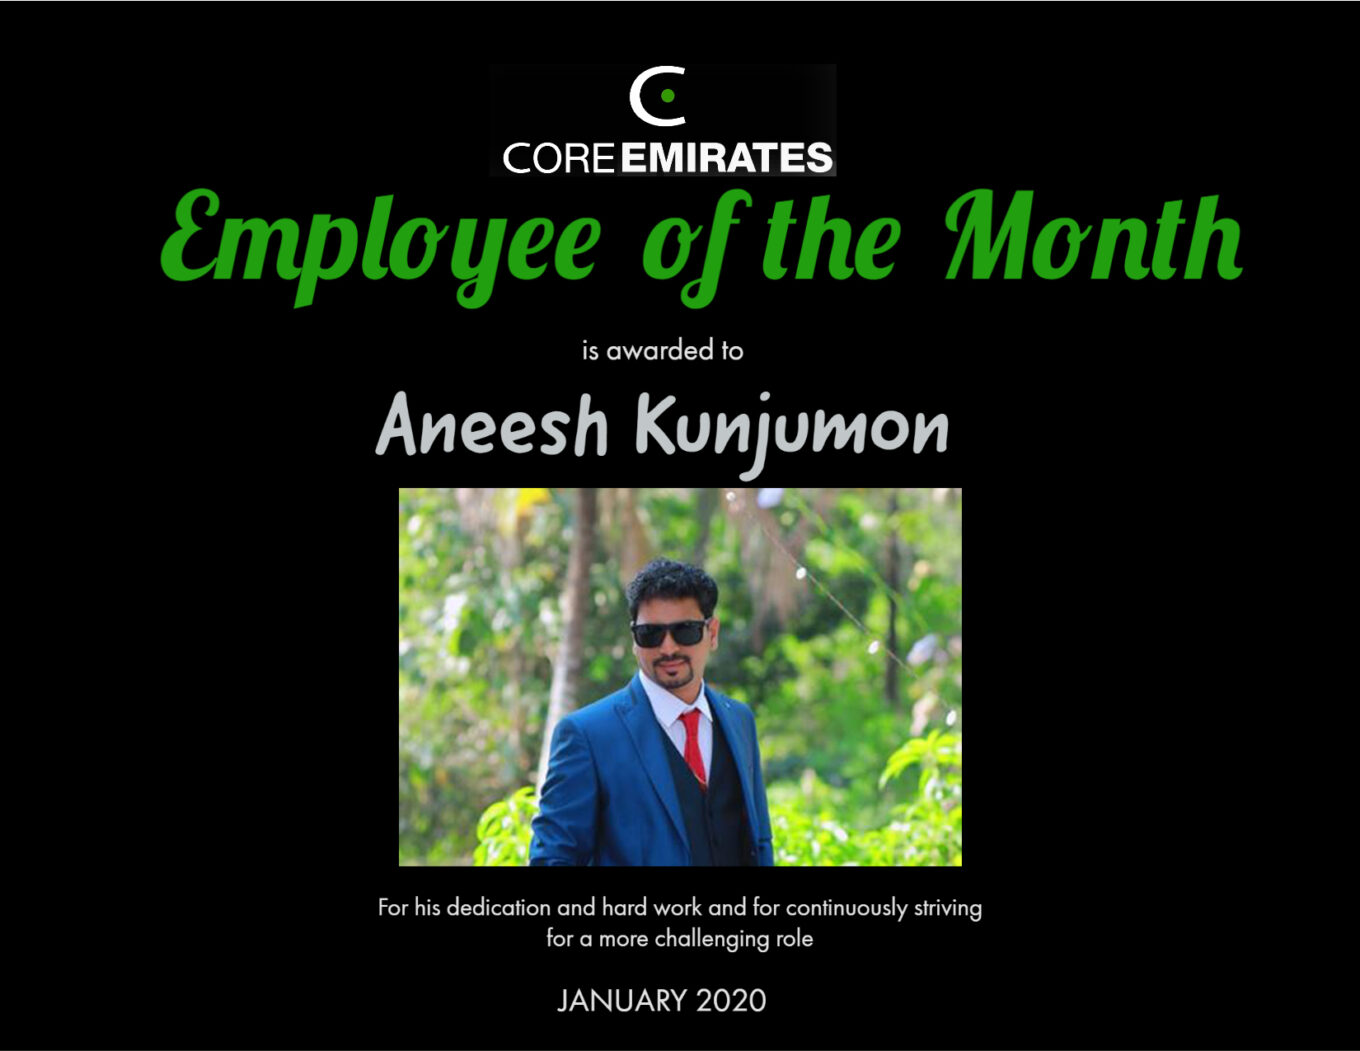 Core emirates employee of the month January 2020